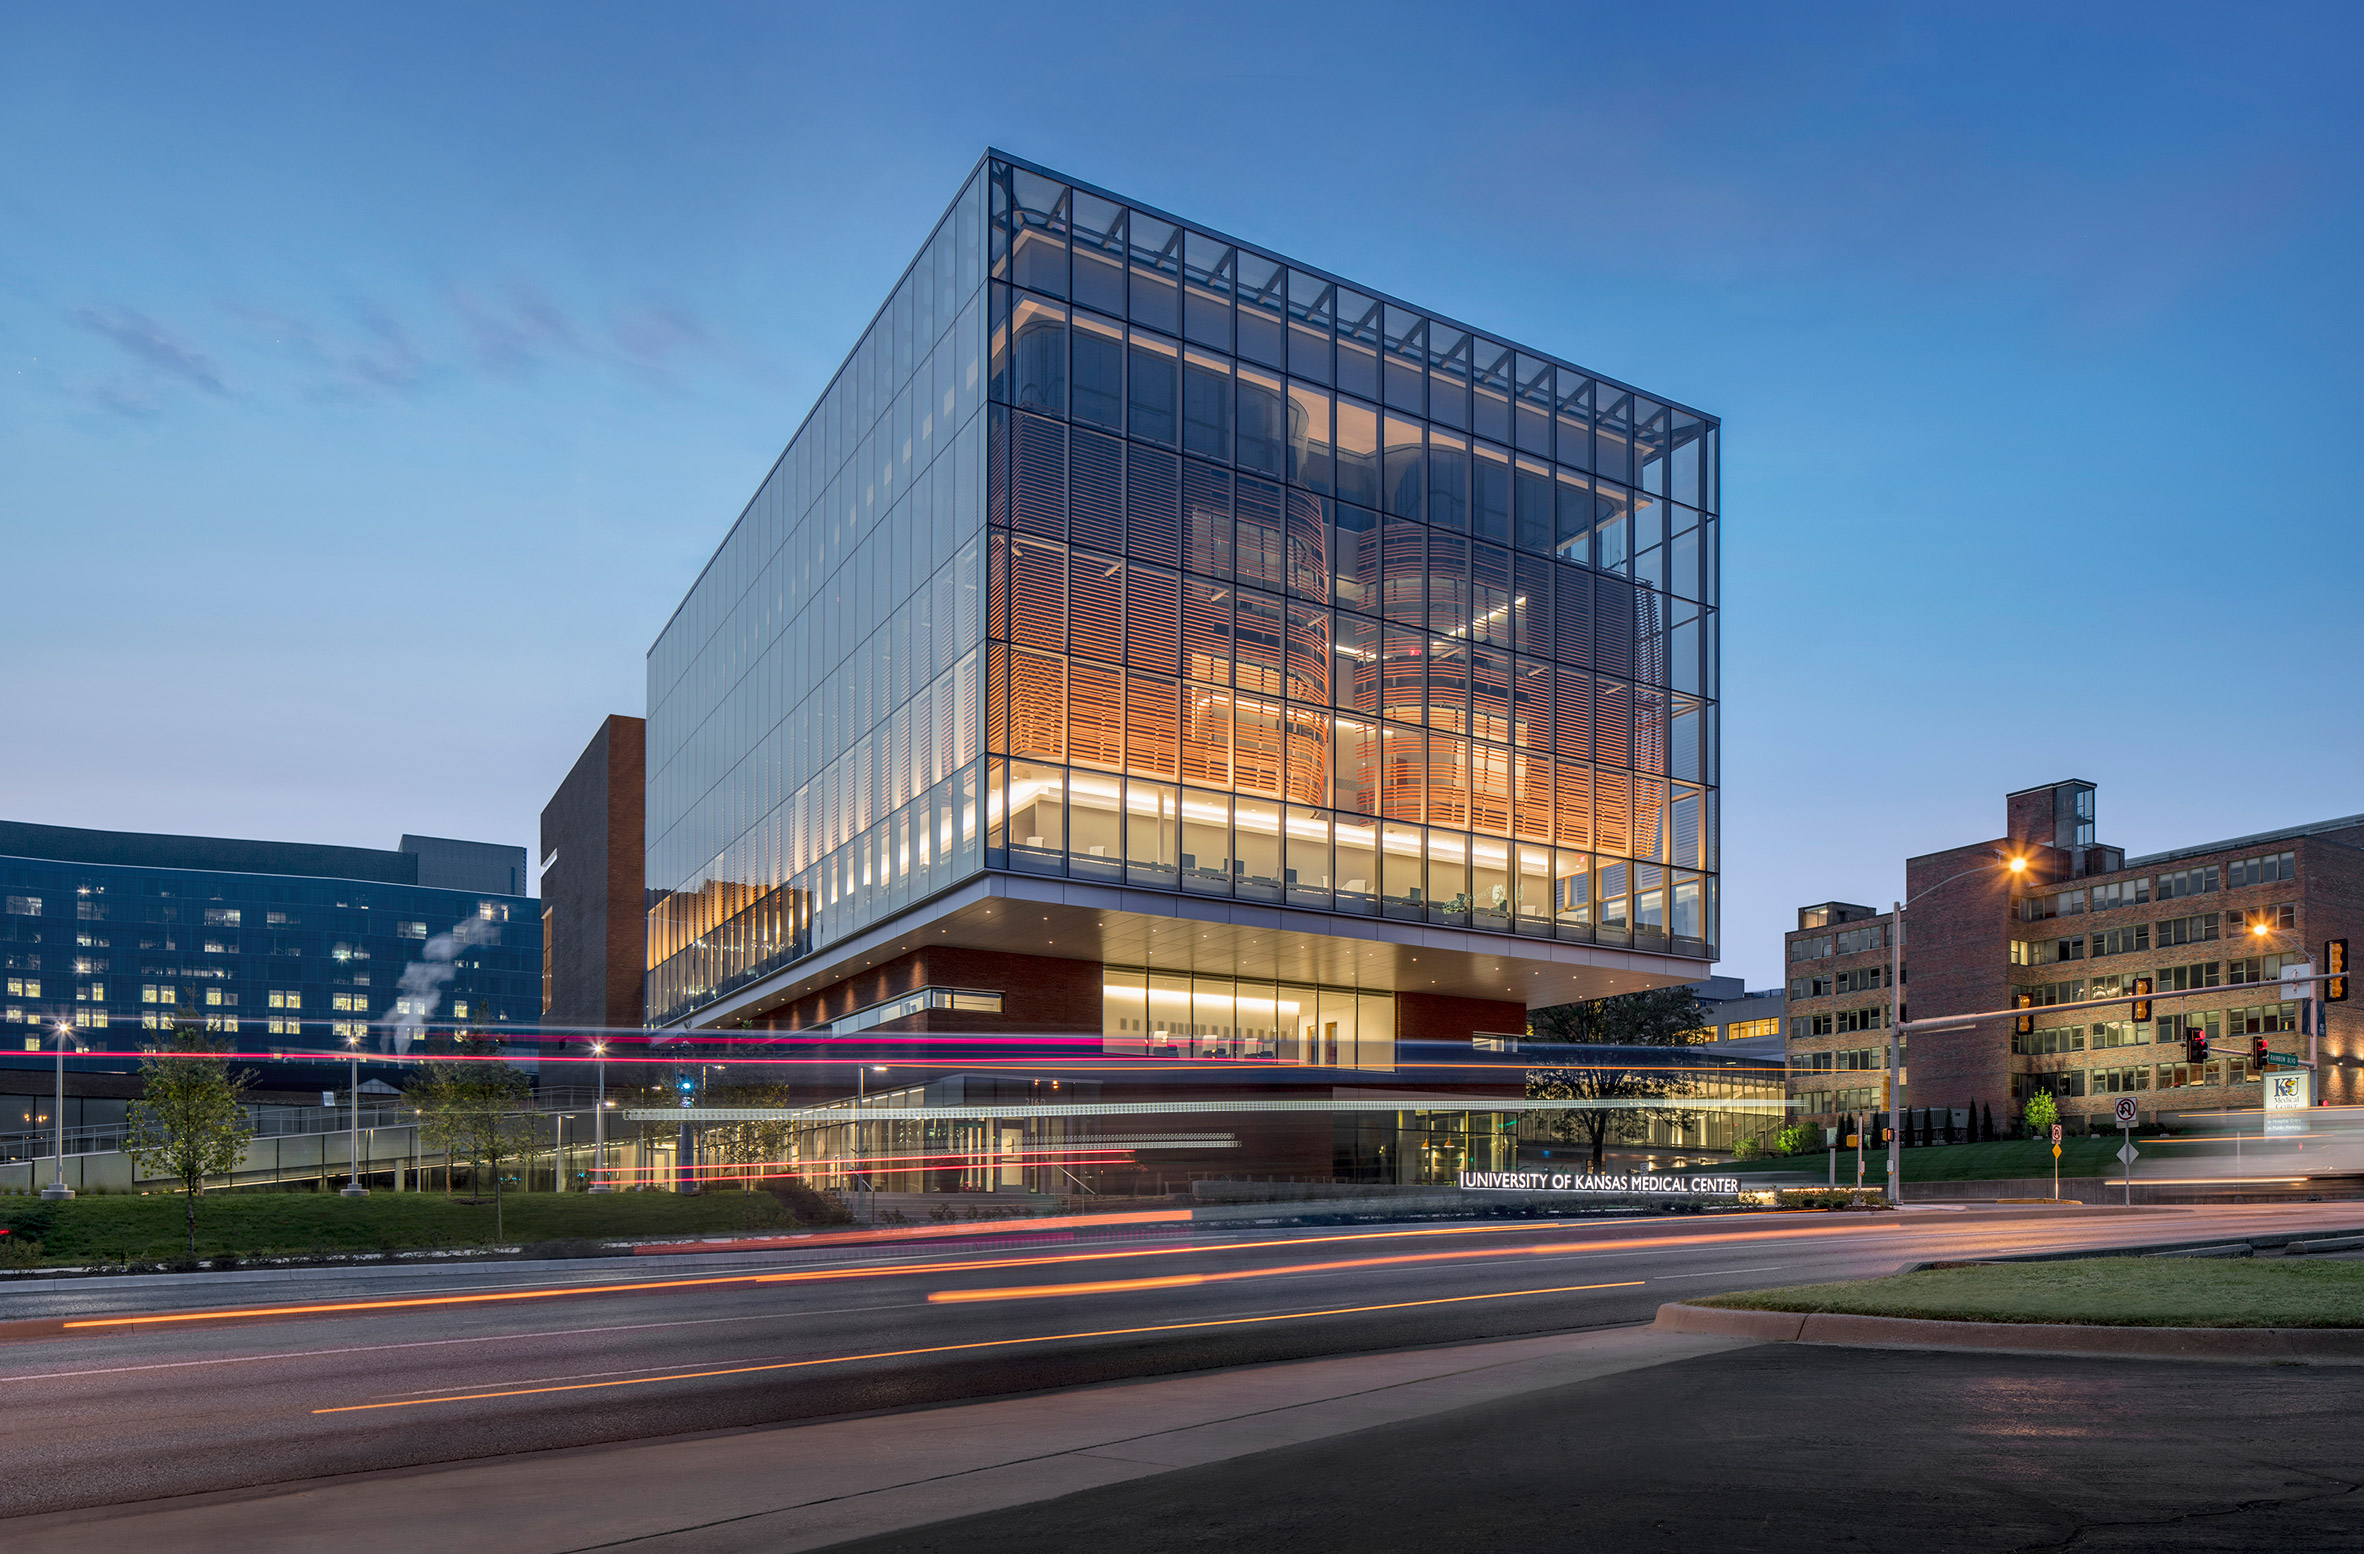 medical-center-university-of-kansas-co-architects-architecture-kansas-city-usa_dezeen_2364_col_0-852x560.jpg